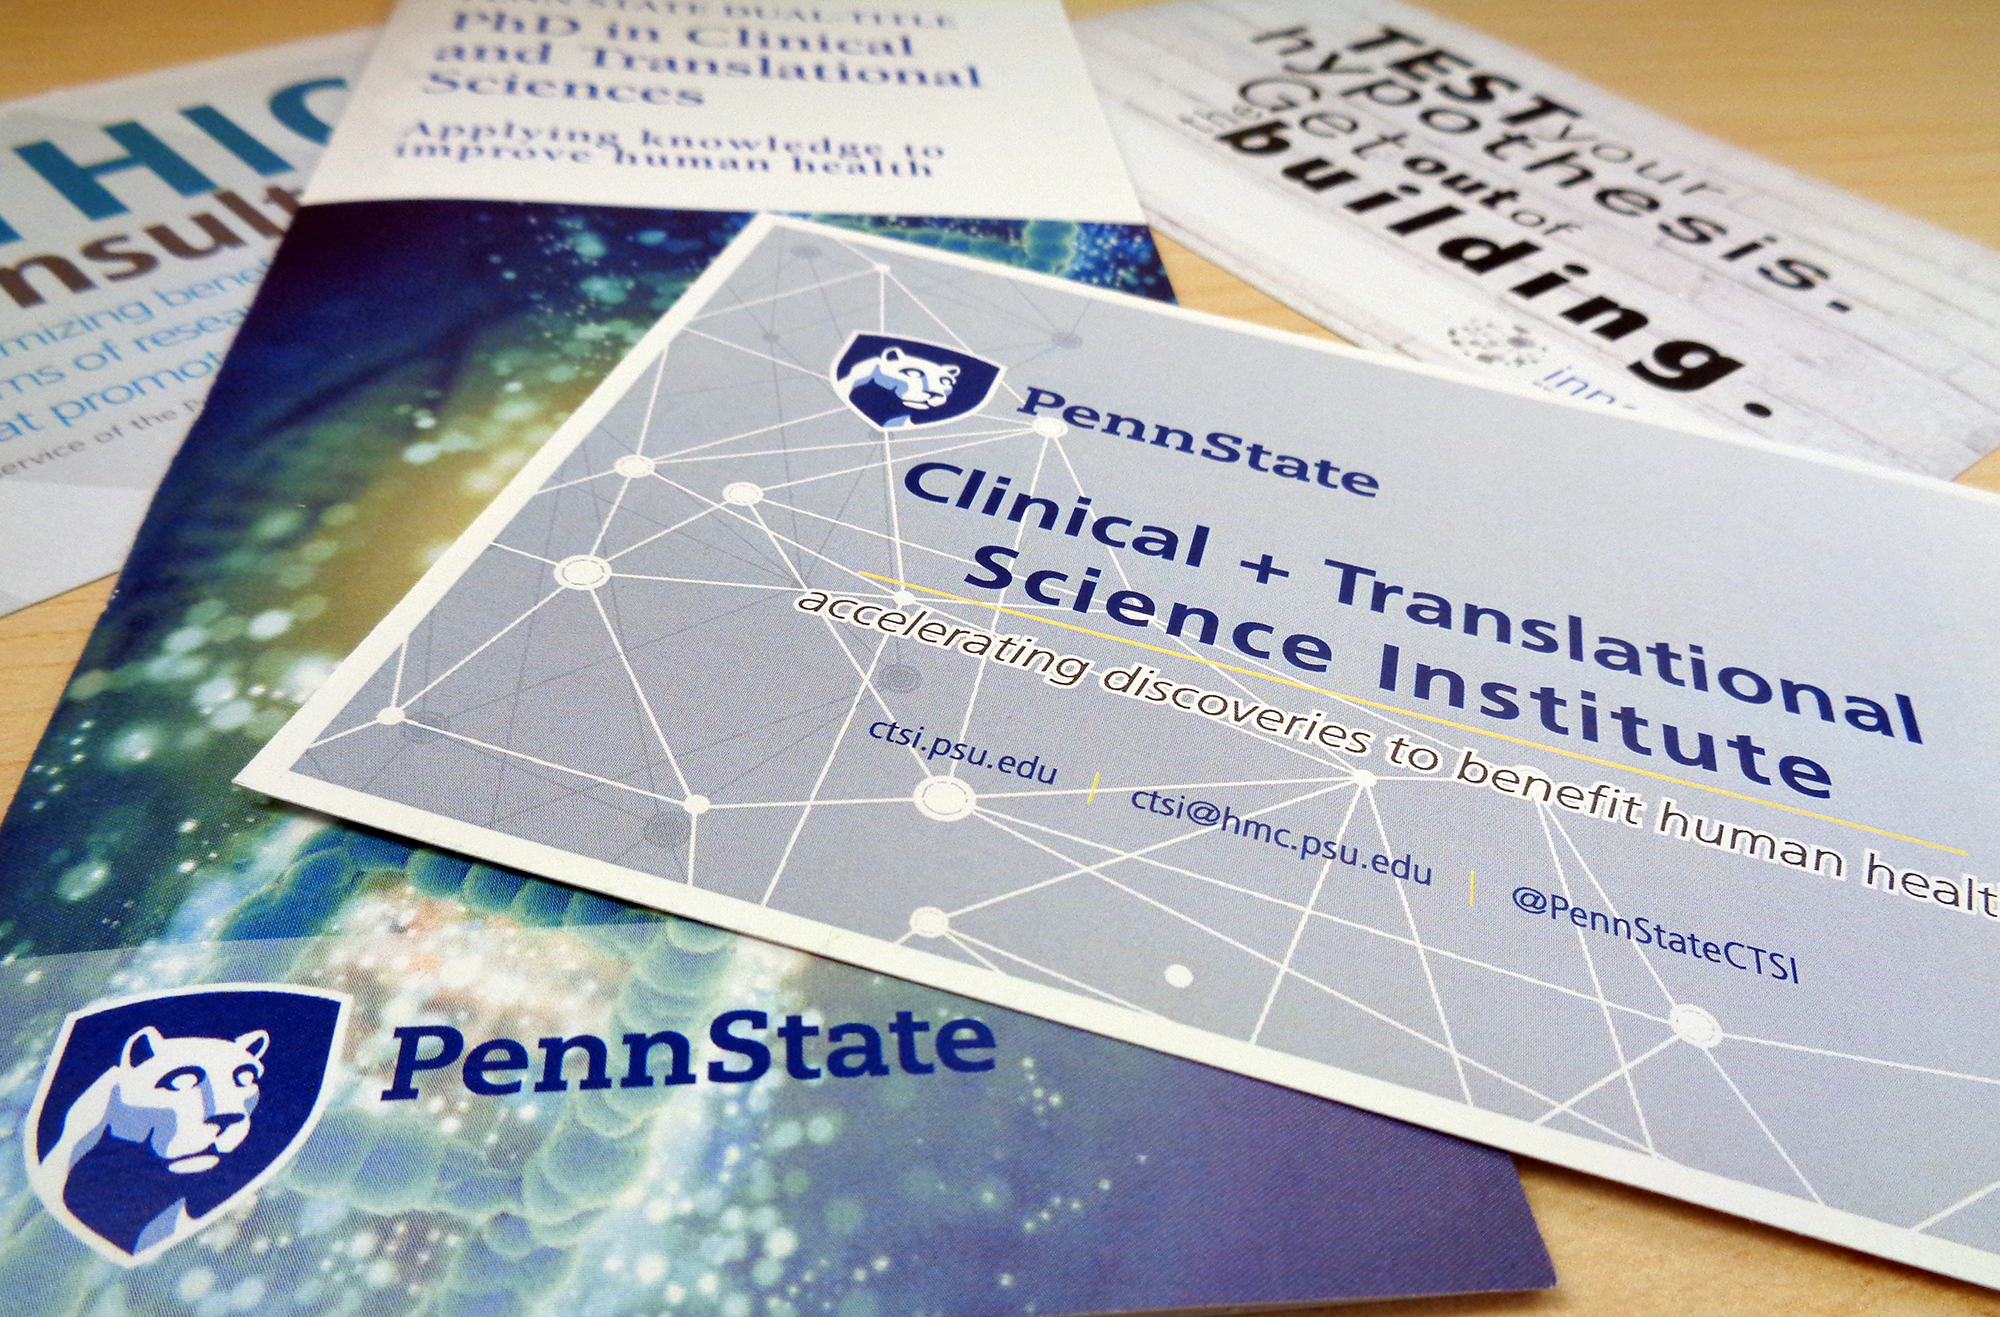 A promotional image for Penn State Clinical and Translational Science Institute shows a number of pamplets and cards advertising CTSI services fanned out on a table.